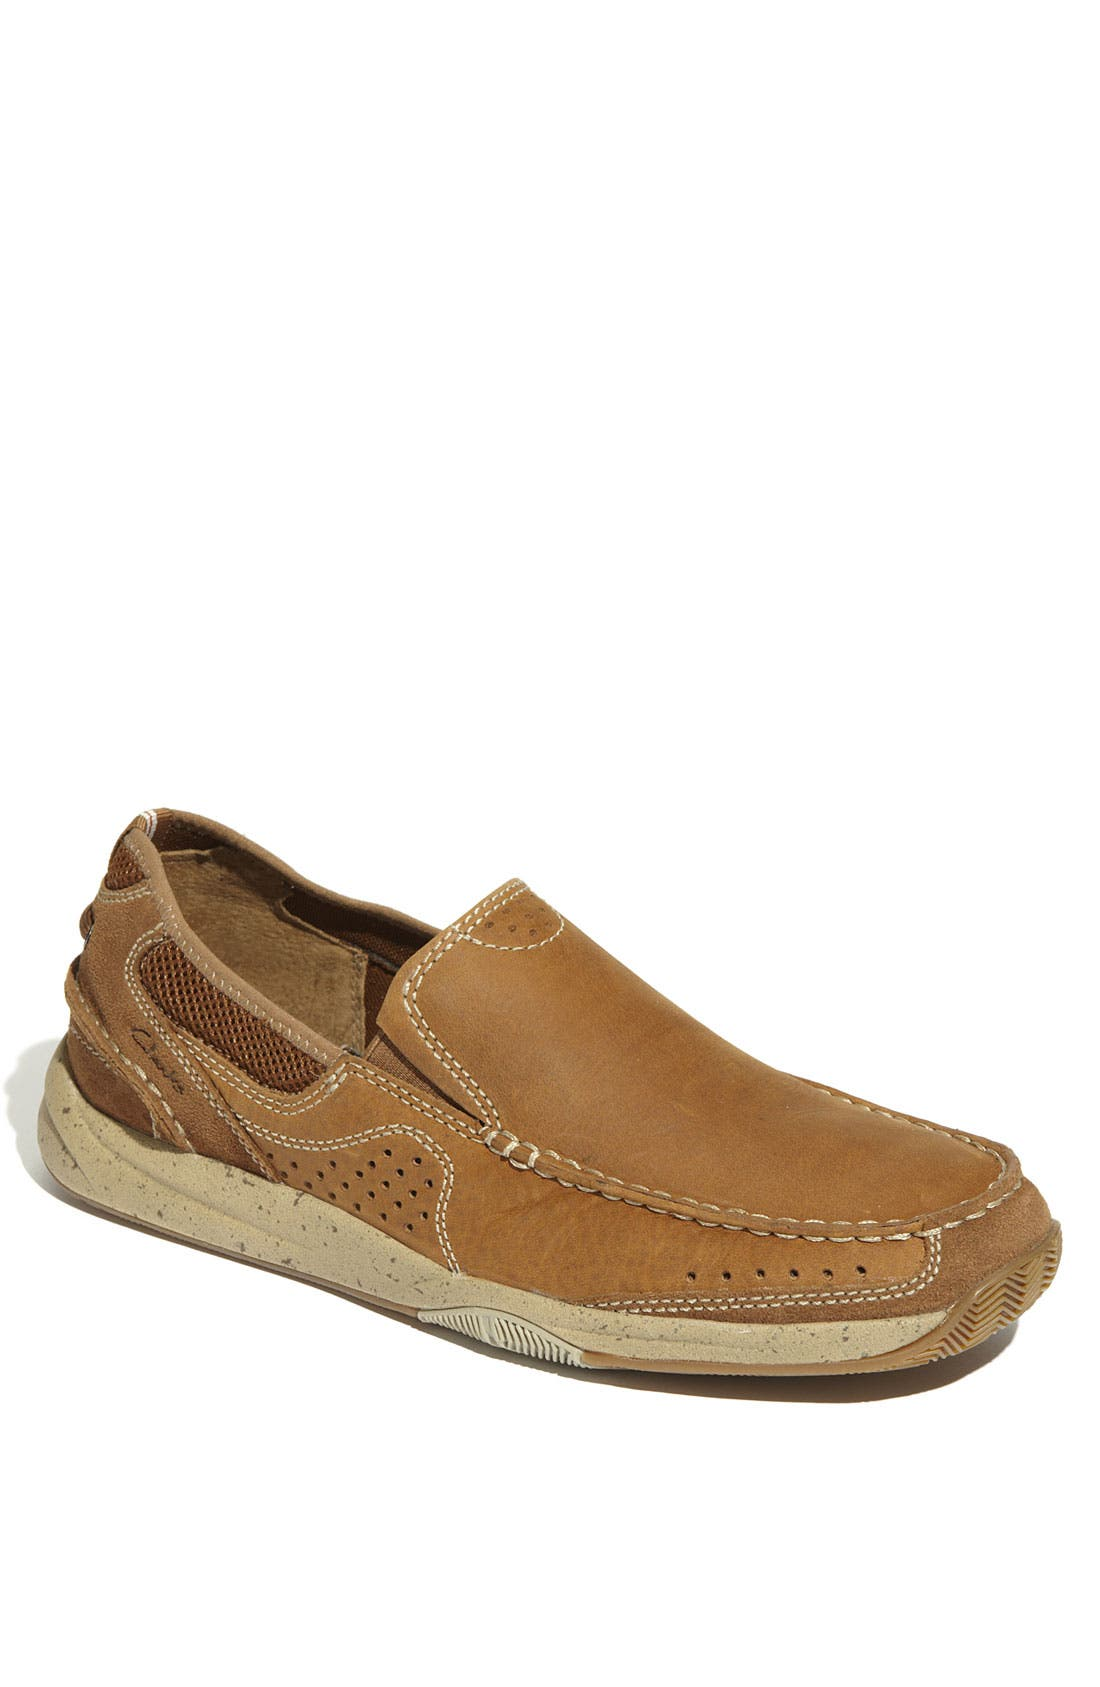 Main Image - Clarks® 'Vestal' Slip-On